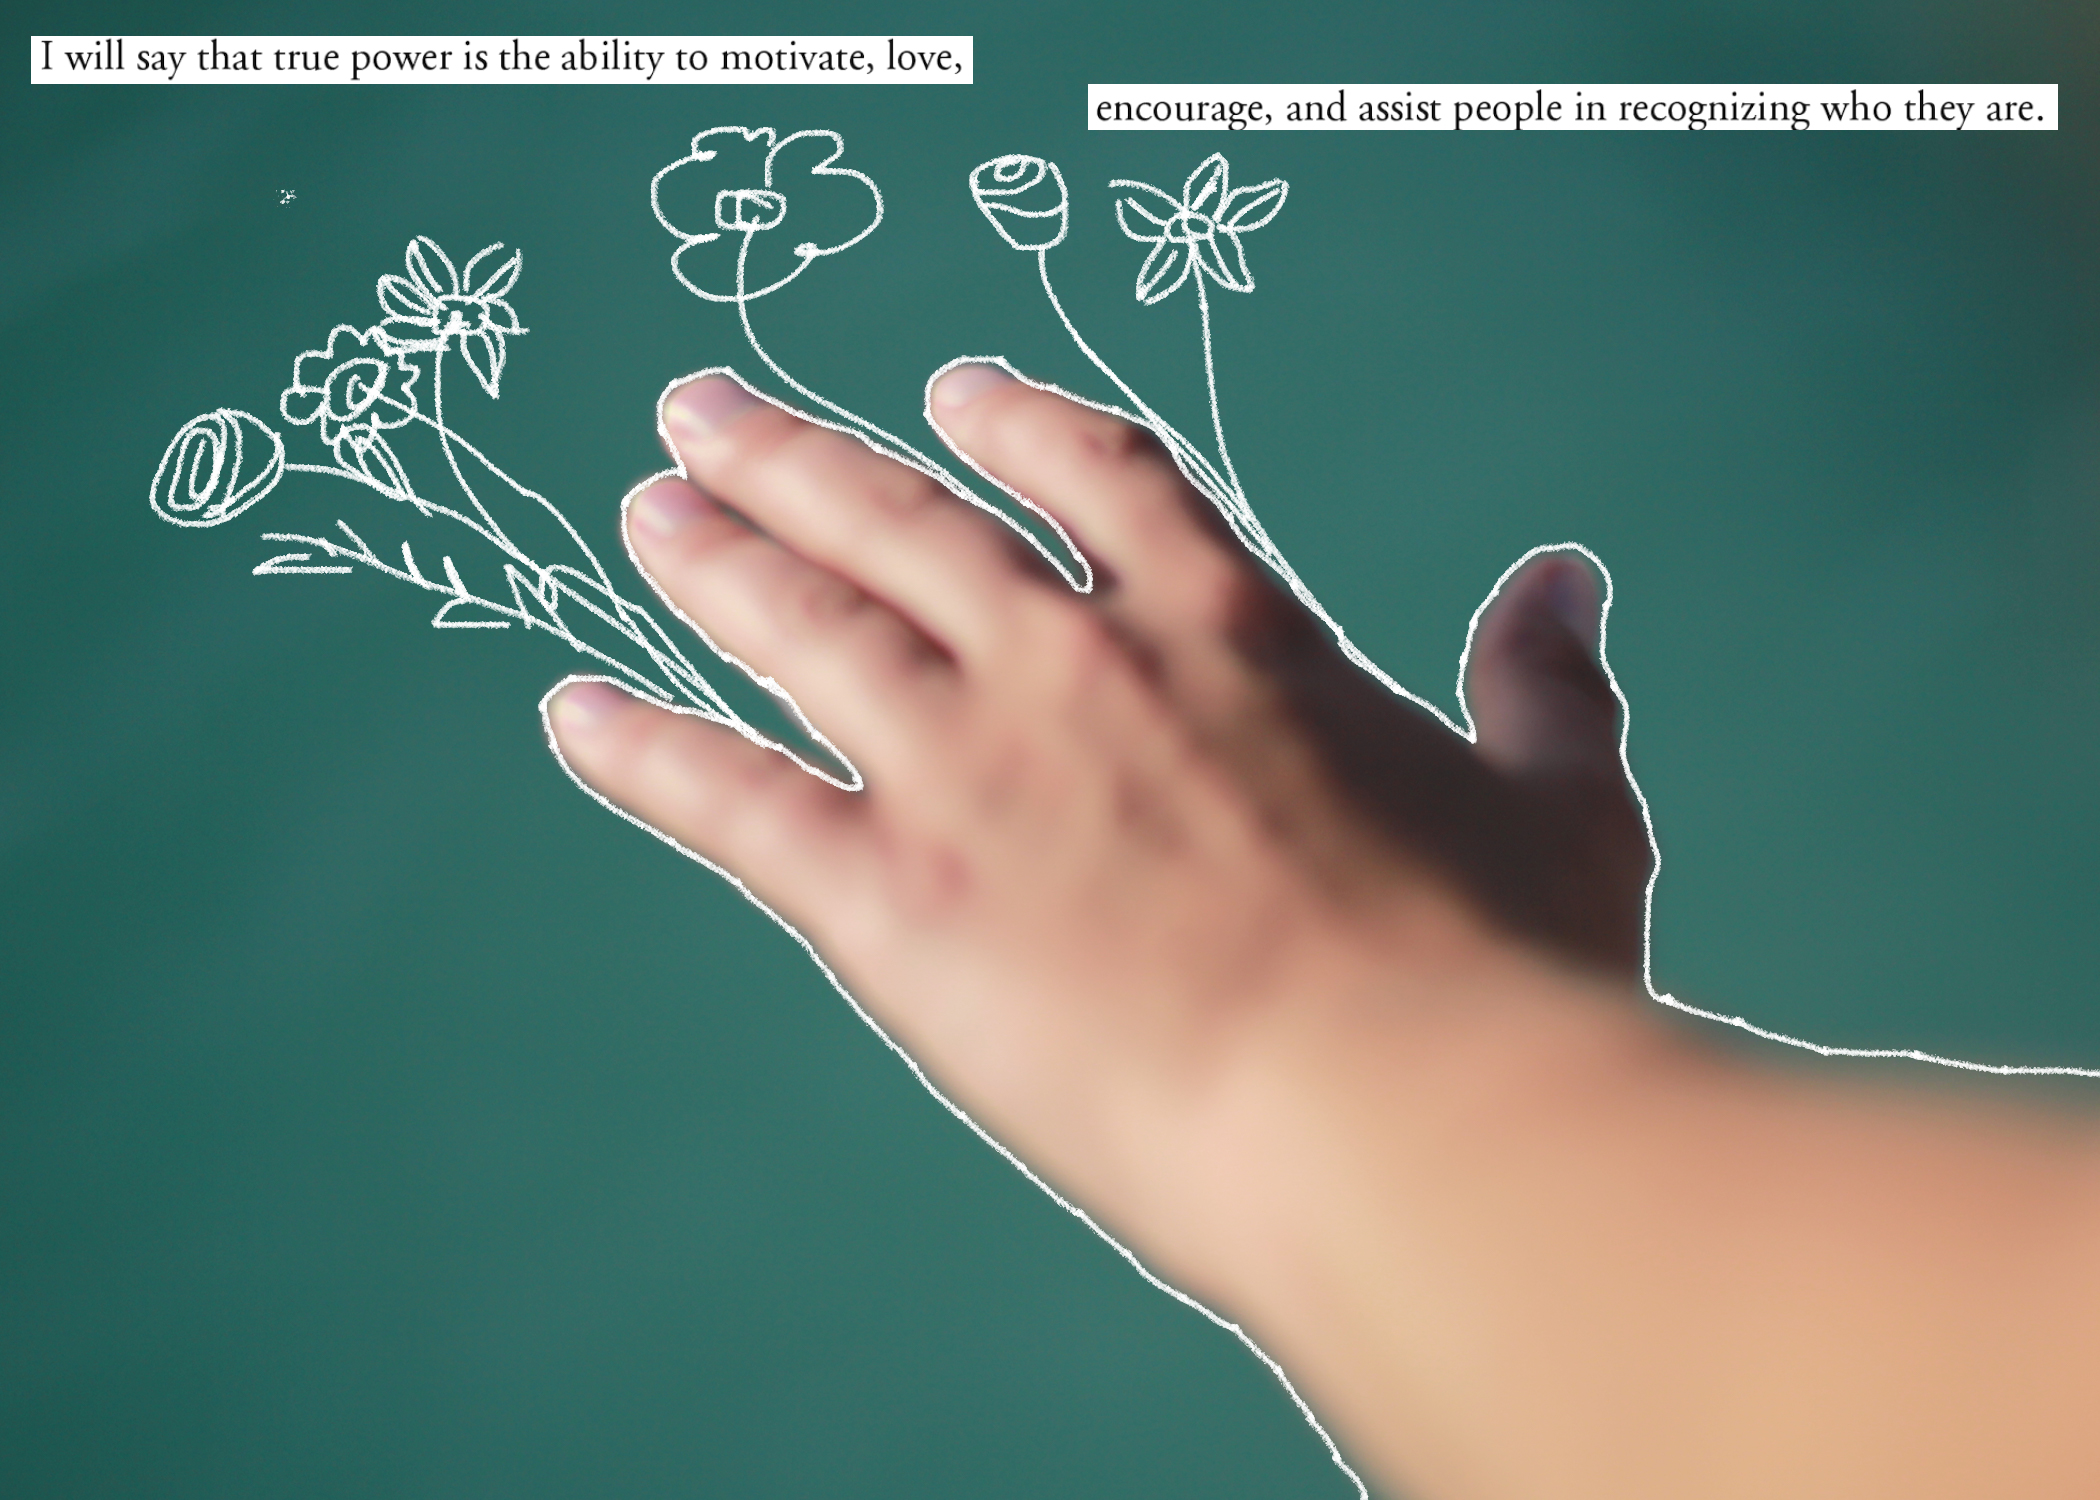 flower hand words final.jpg